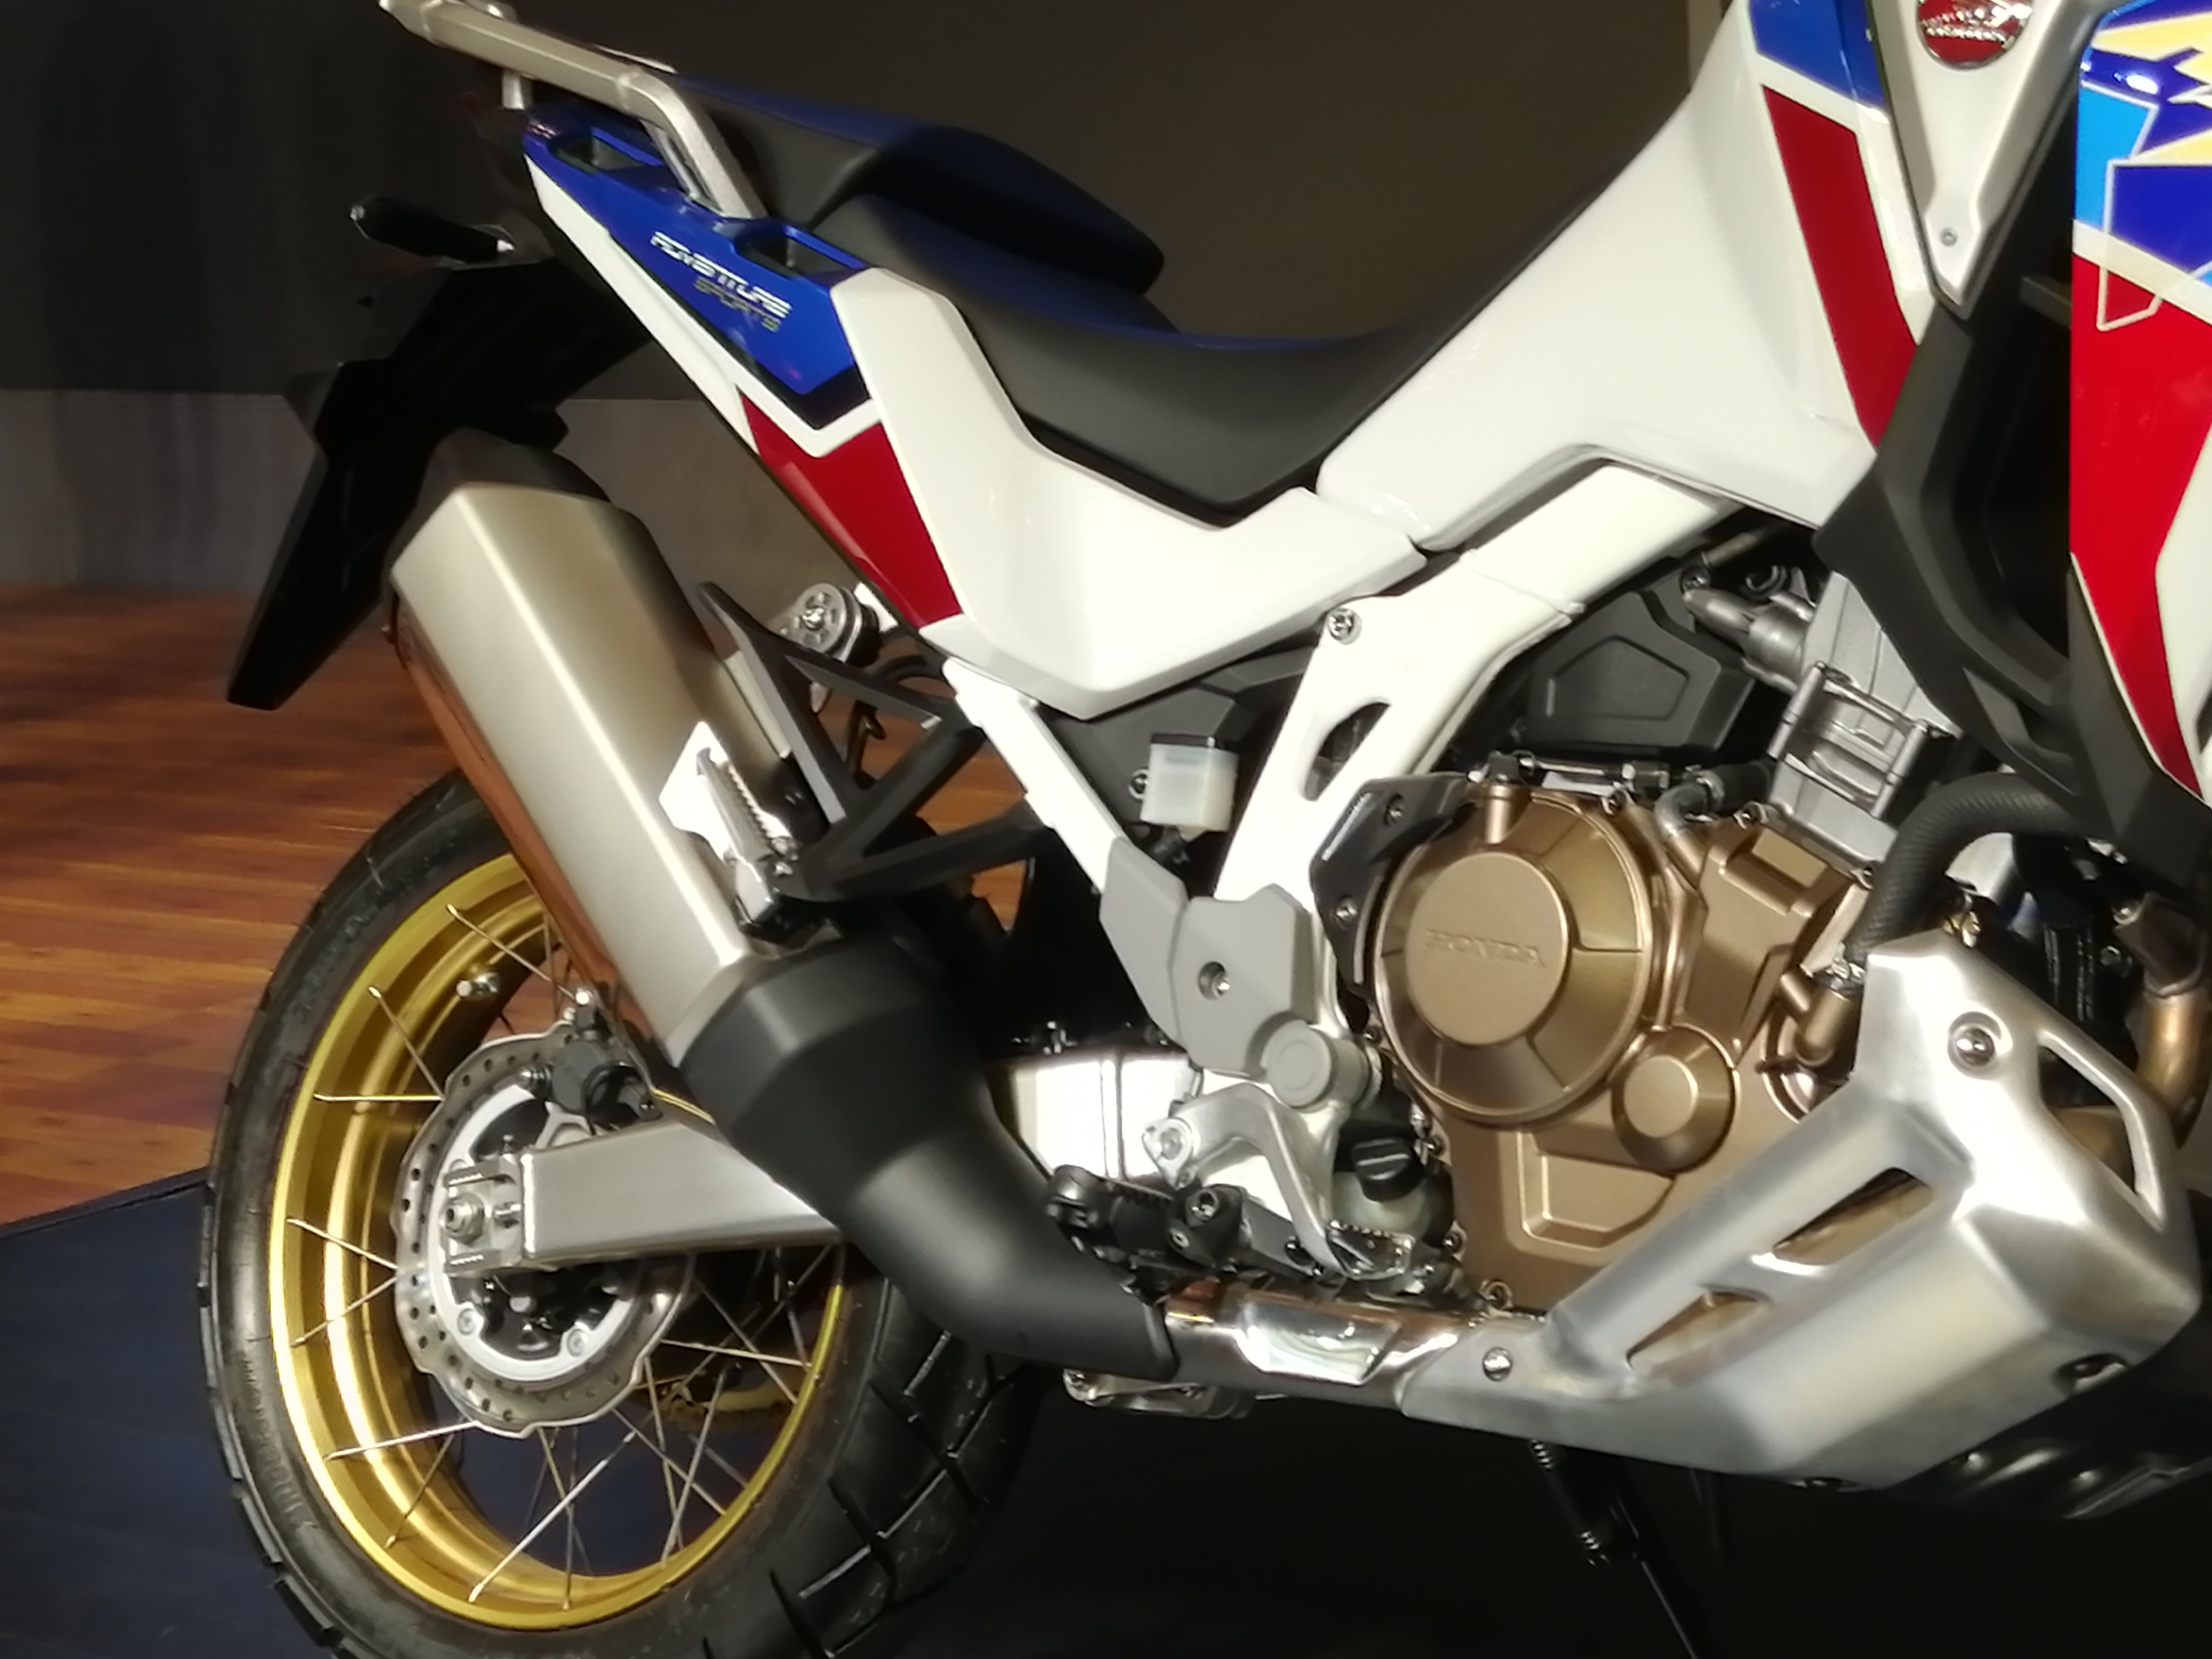 Honda's new Africa Twin has a bigger engine of 1084 cc compared to the previous 998 cc. The engine has dropped 5 kgs of overall weight and delivers 12% more power and 11% more torque.